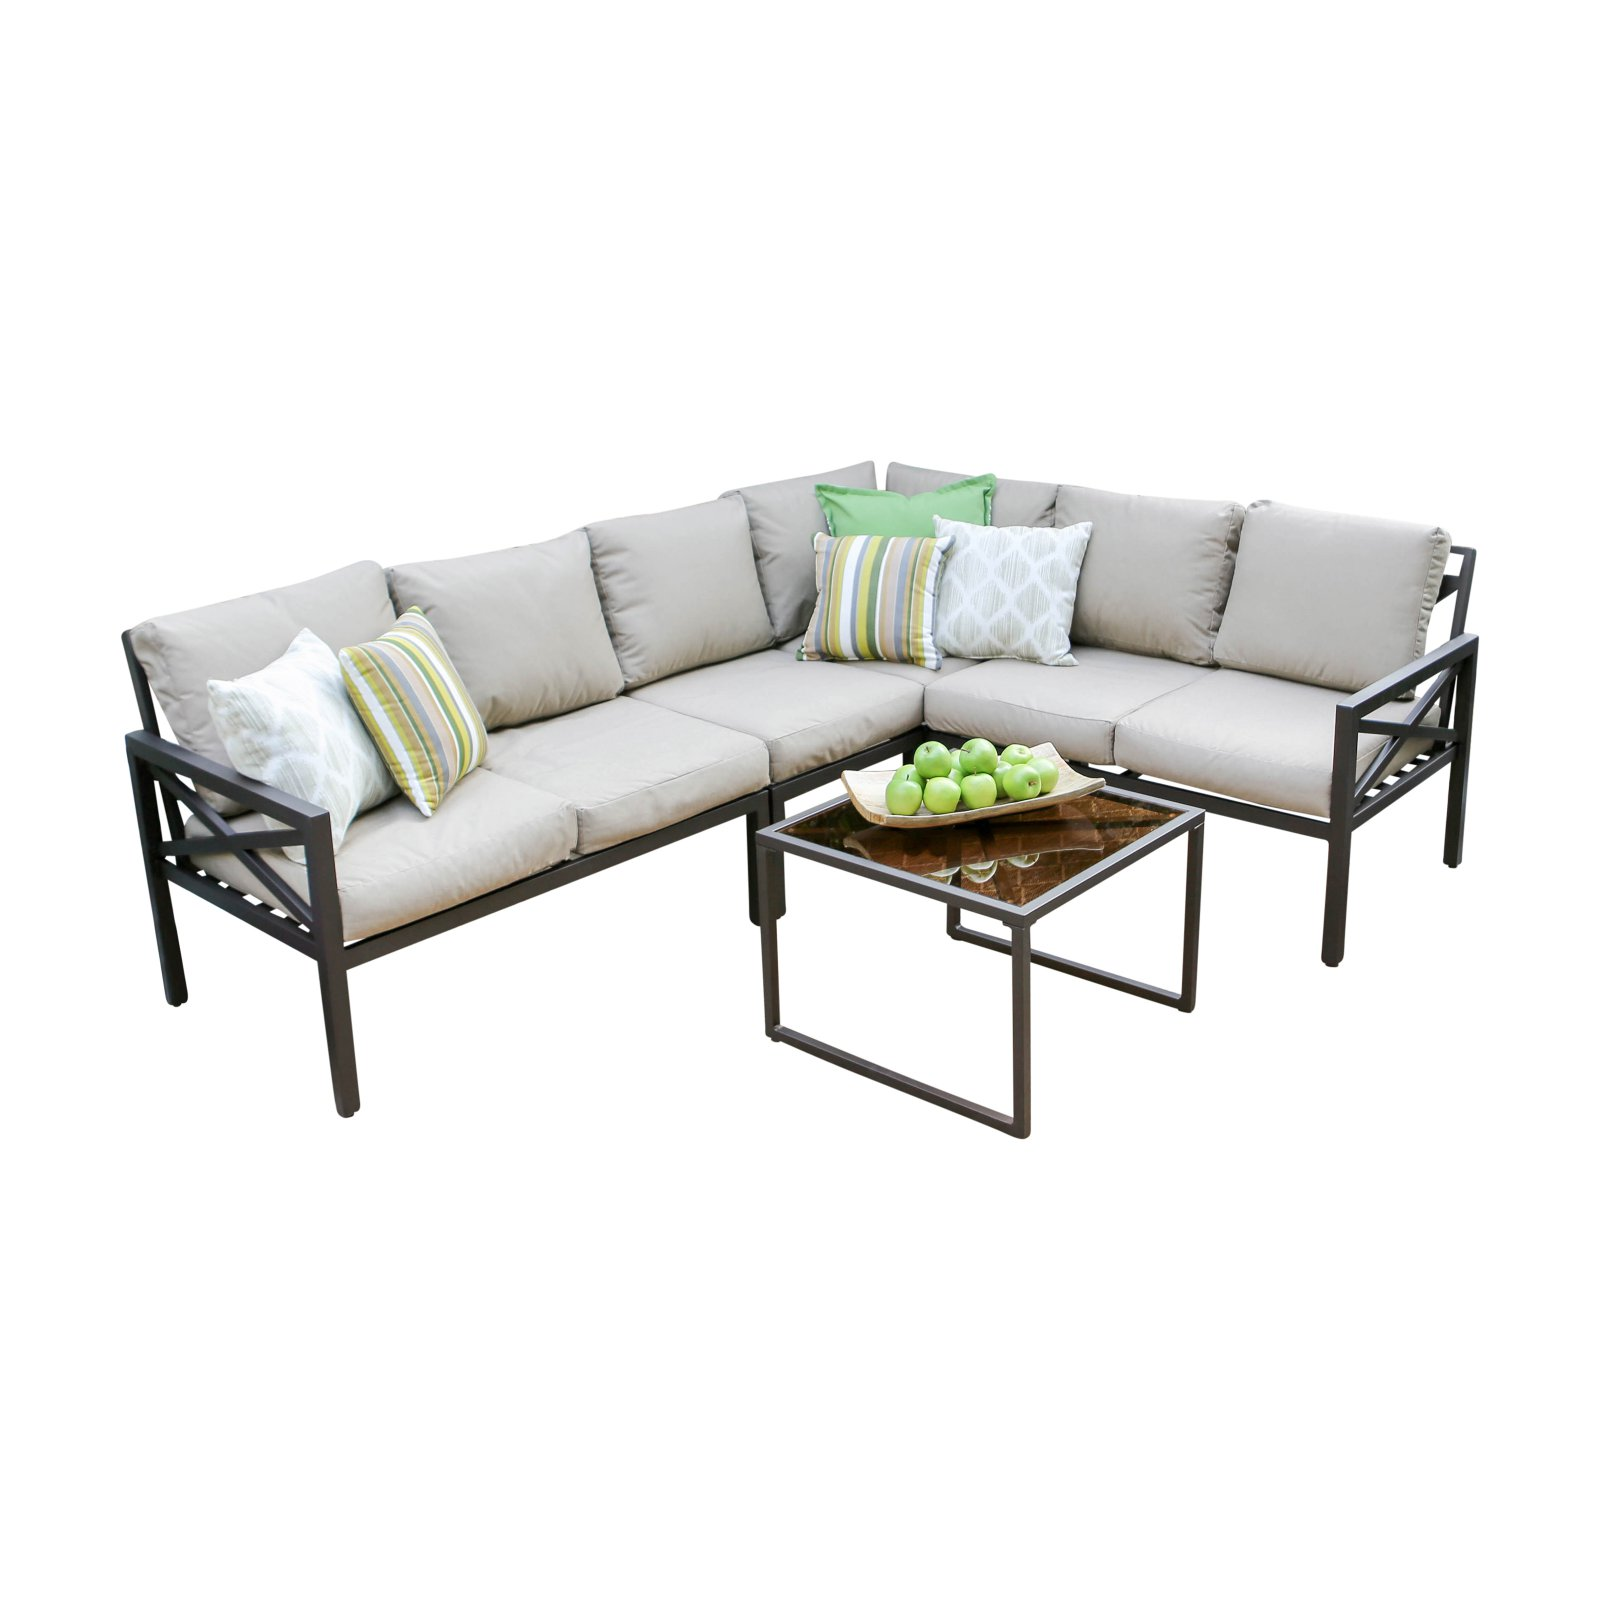 Leisure Made Blakely 5 Piece Outdoor Sectional Conversation Set